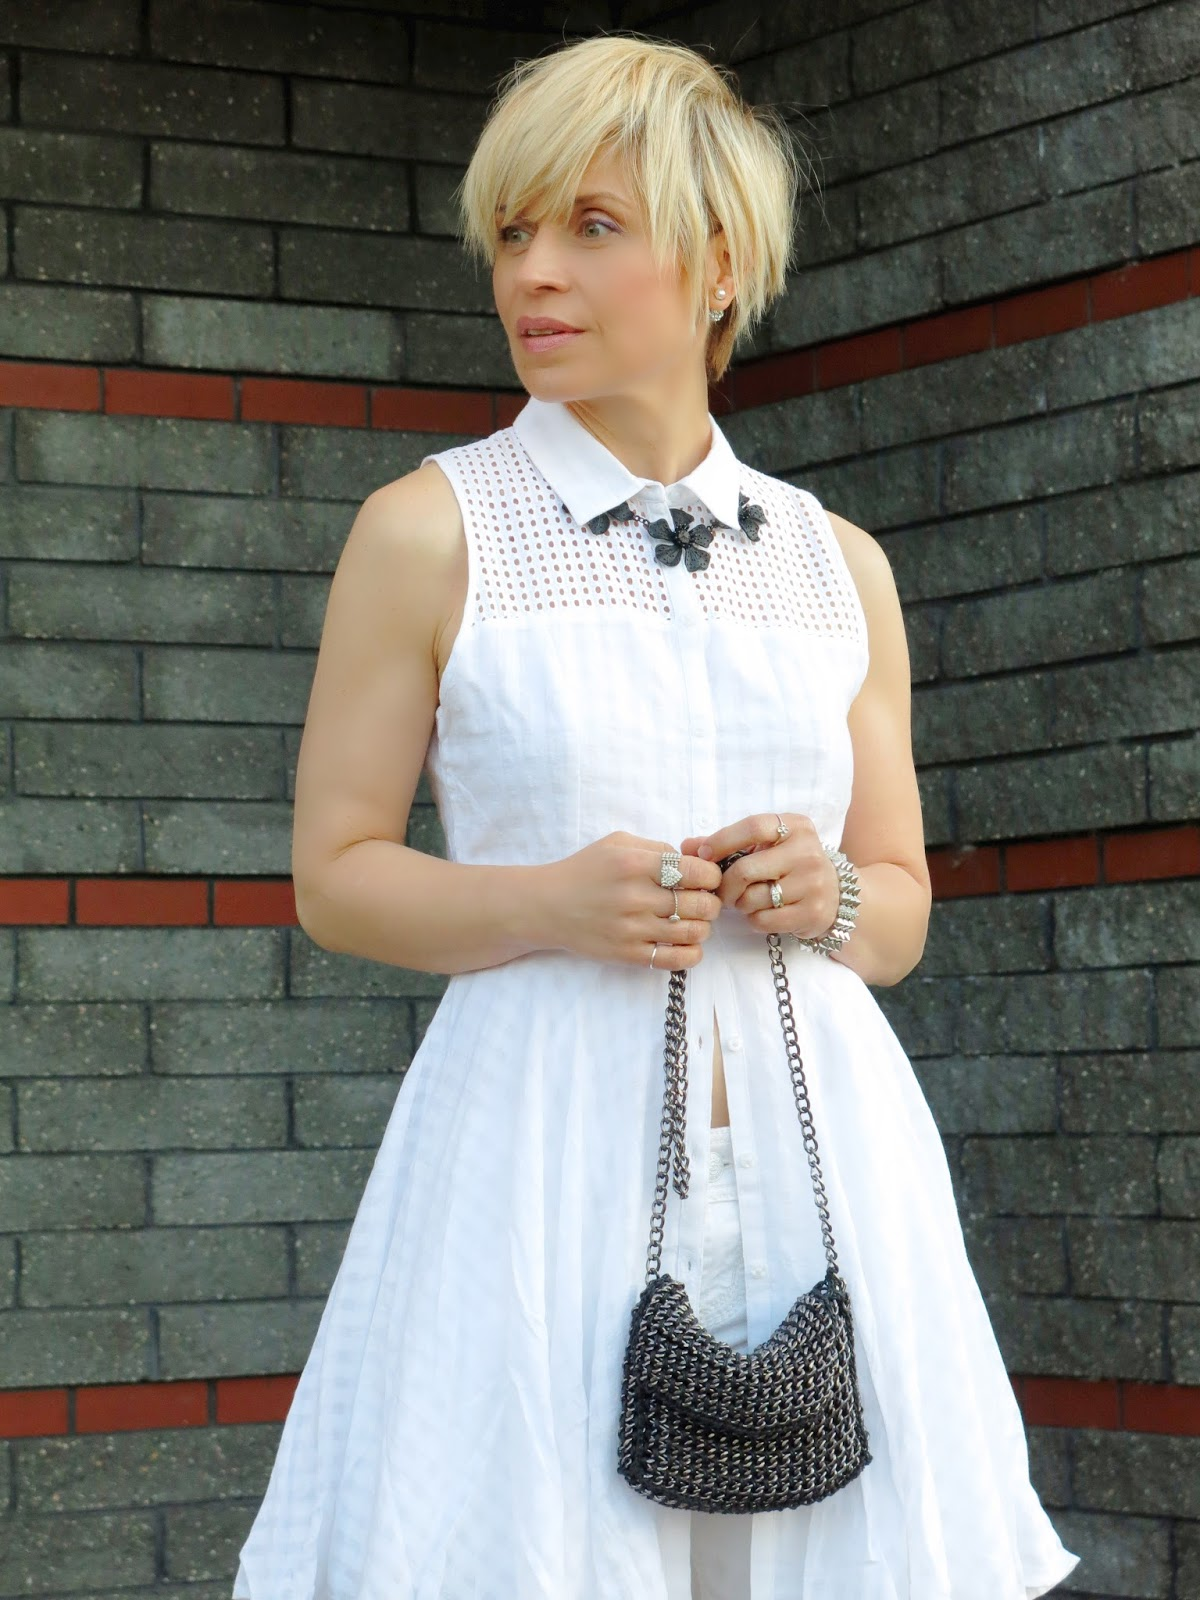 styling a white dress over white skinny jeans, with black pumps and a statement necklace